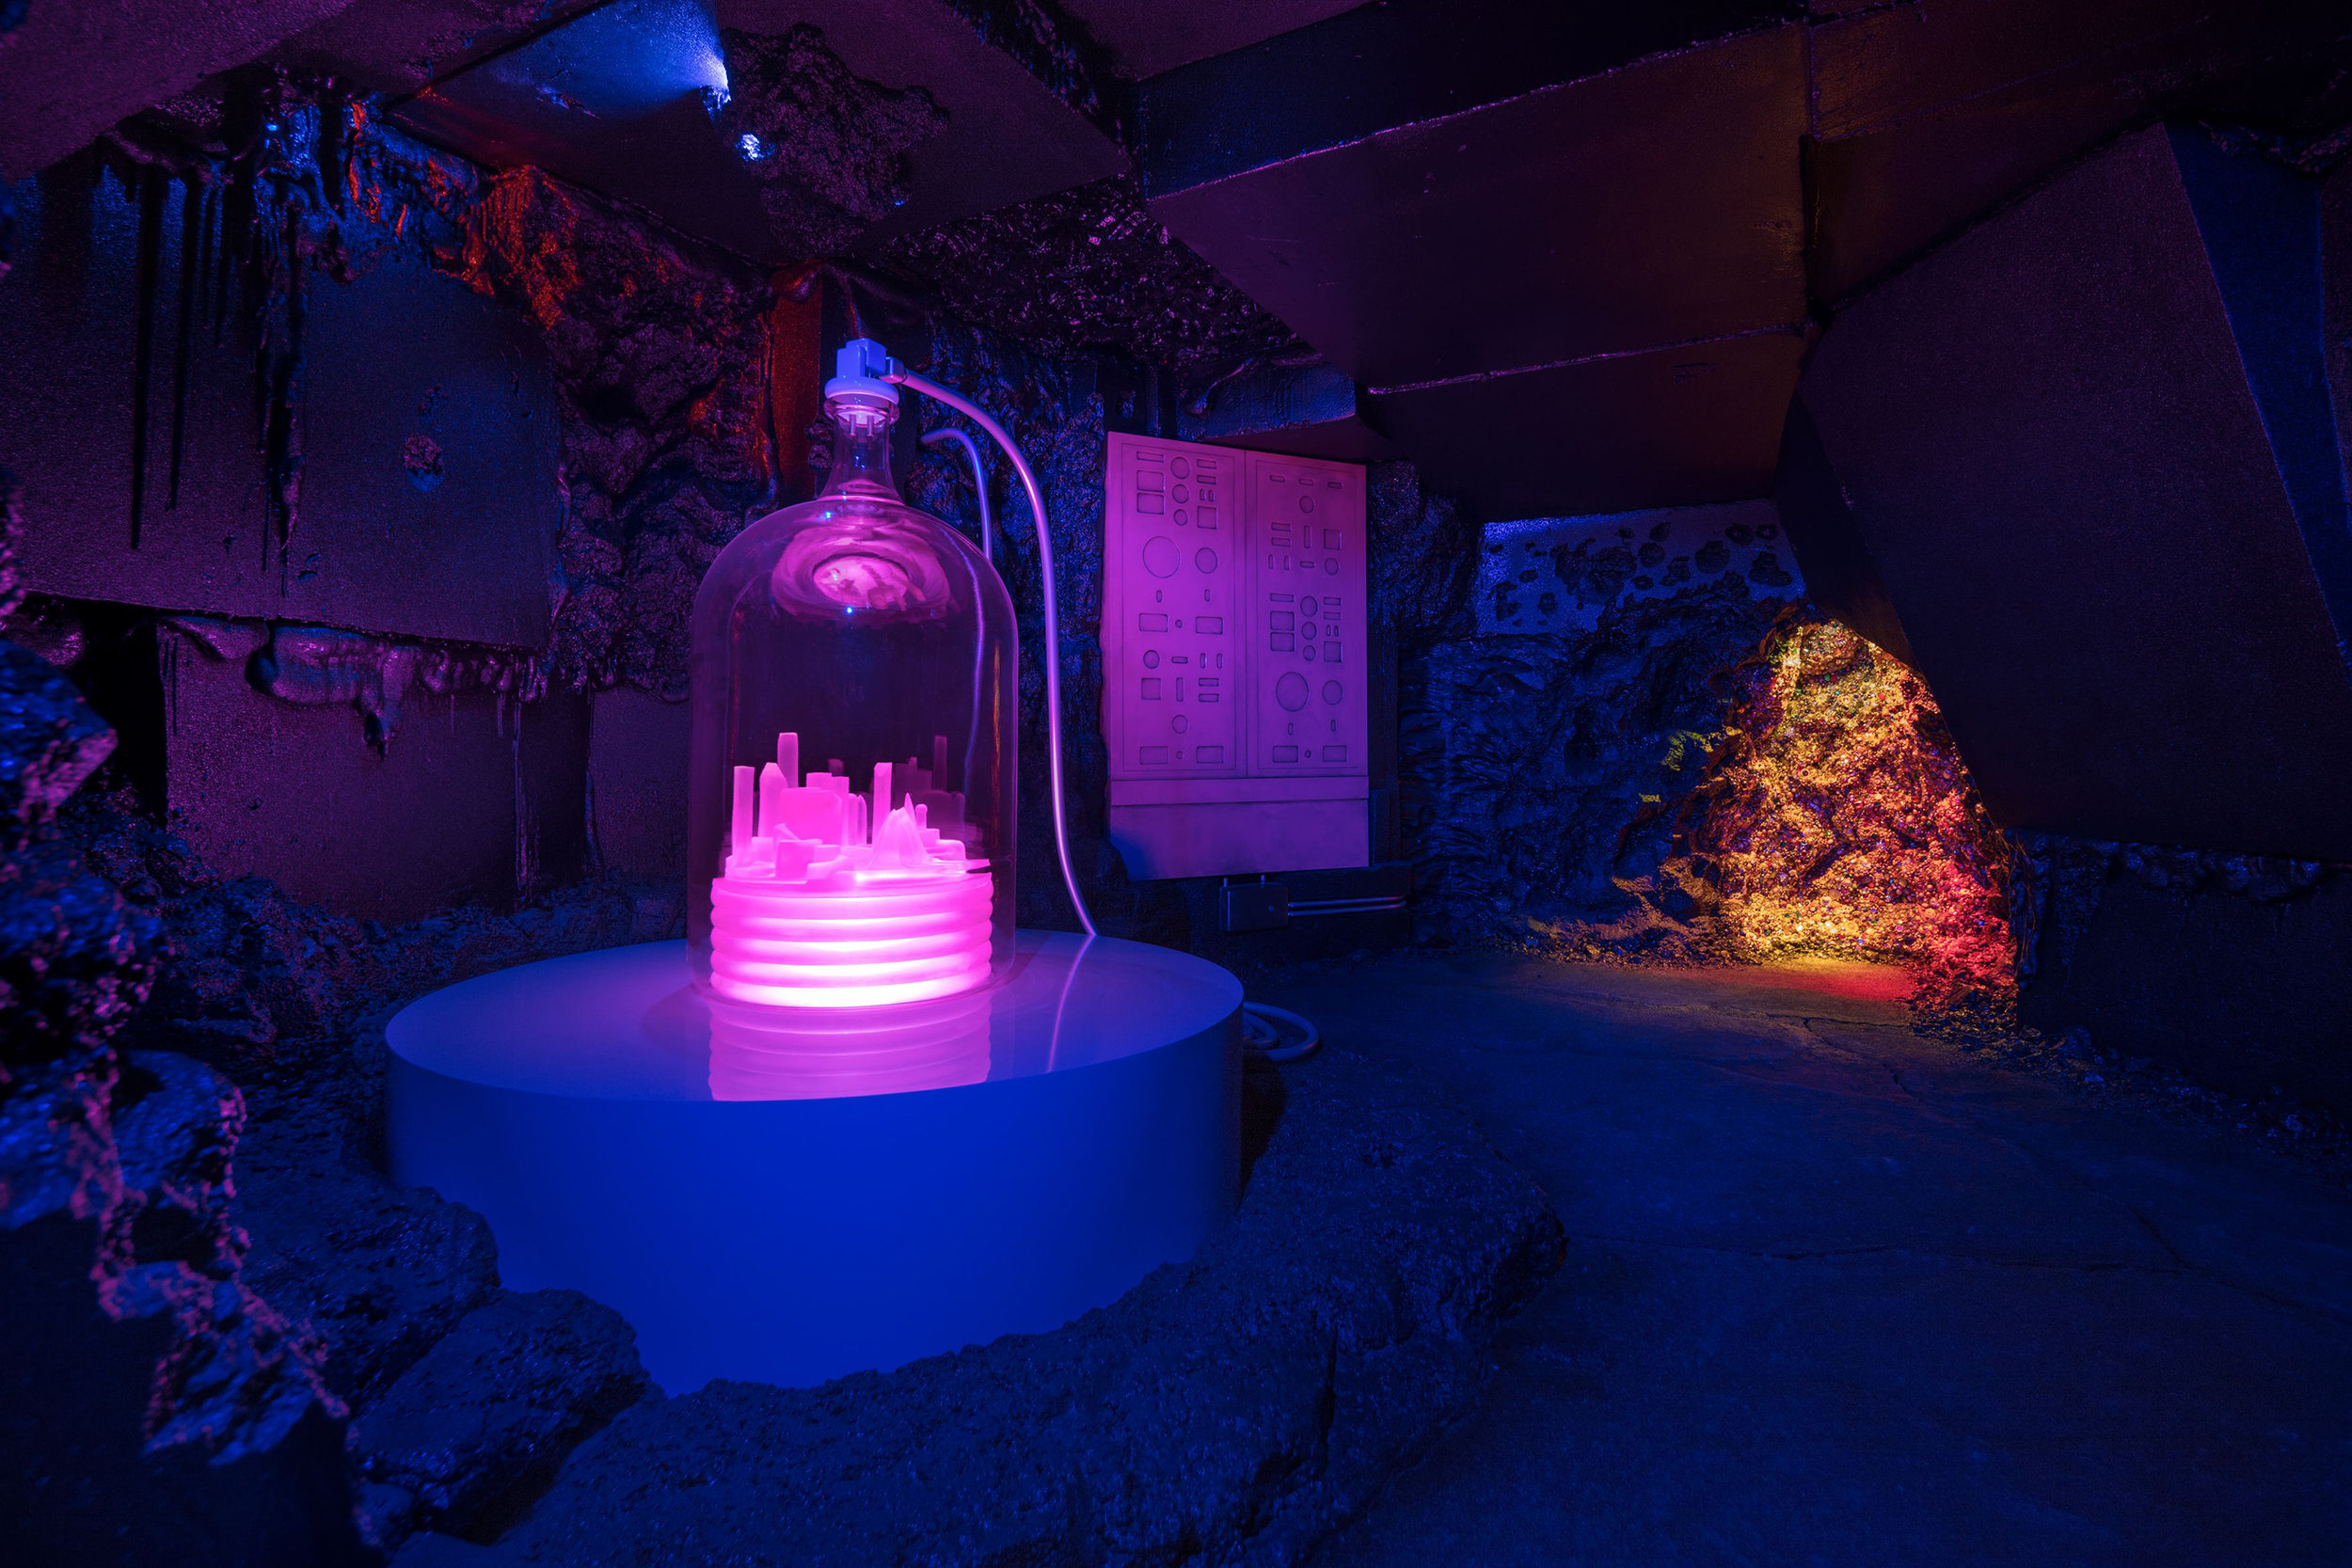 Mike Kelley.  Kandor 10B (Exploded Fortress of Solitude). 2011. Mixed media with video projection, sound. 289.6 x 1524 x 2286 cm / 114 x 600 x 900 in. Installation view, 'Mike Kelley: Kandors 1999 –2011,' Hauser & Wirth Los Angeles, 2017. Art © Mike Kelley Foundation for the Arts. All Rights Reserved / Licensed by VAGA, New York, NY. Courtesy the Mike Kelley Foundation for the Arts and Hauser & Wirth.Photo: Fredrik Nilsen